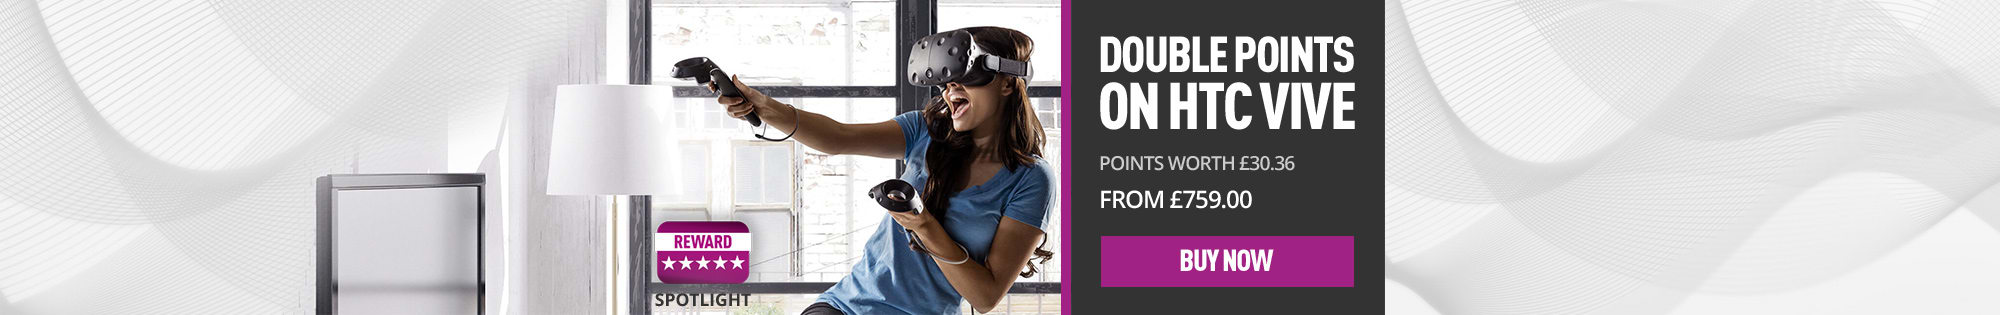 Double Points on HTC Vive